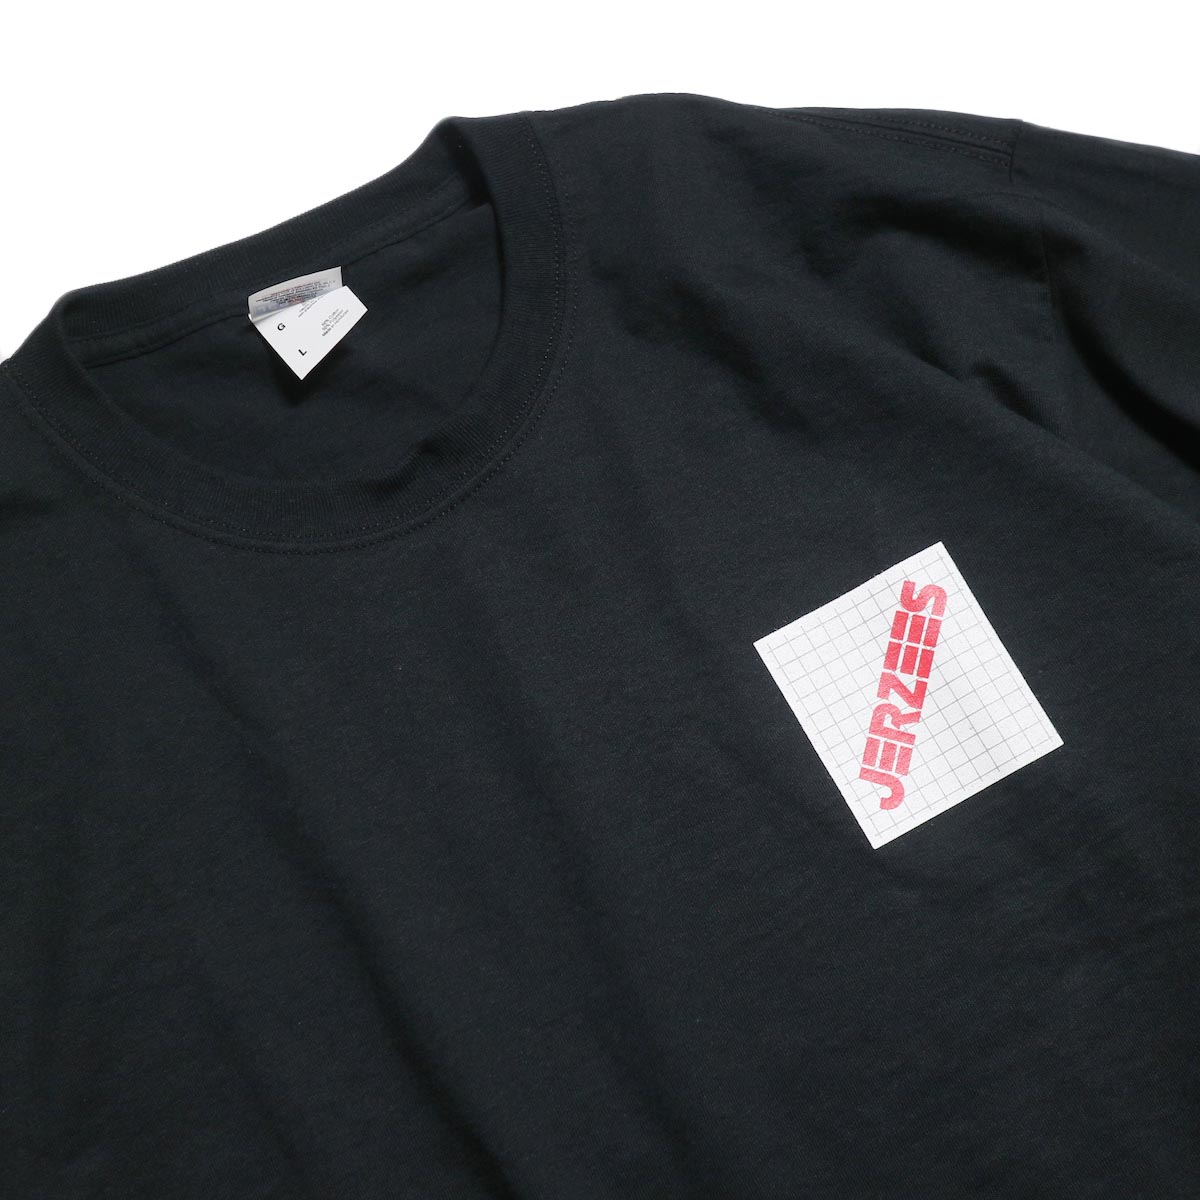 N.HOOLYWOOD × JERZEES  / 191-CS44-070 Short Sleeve Tee -Black 襟